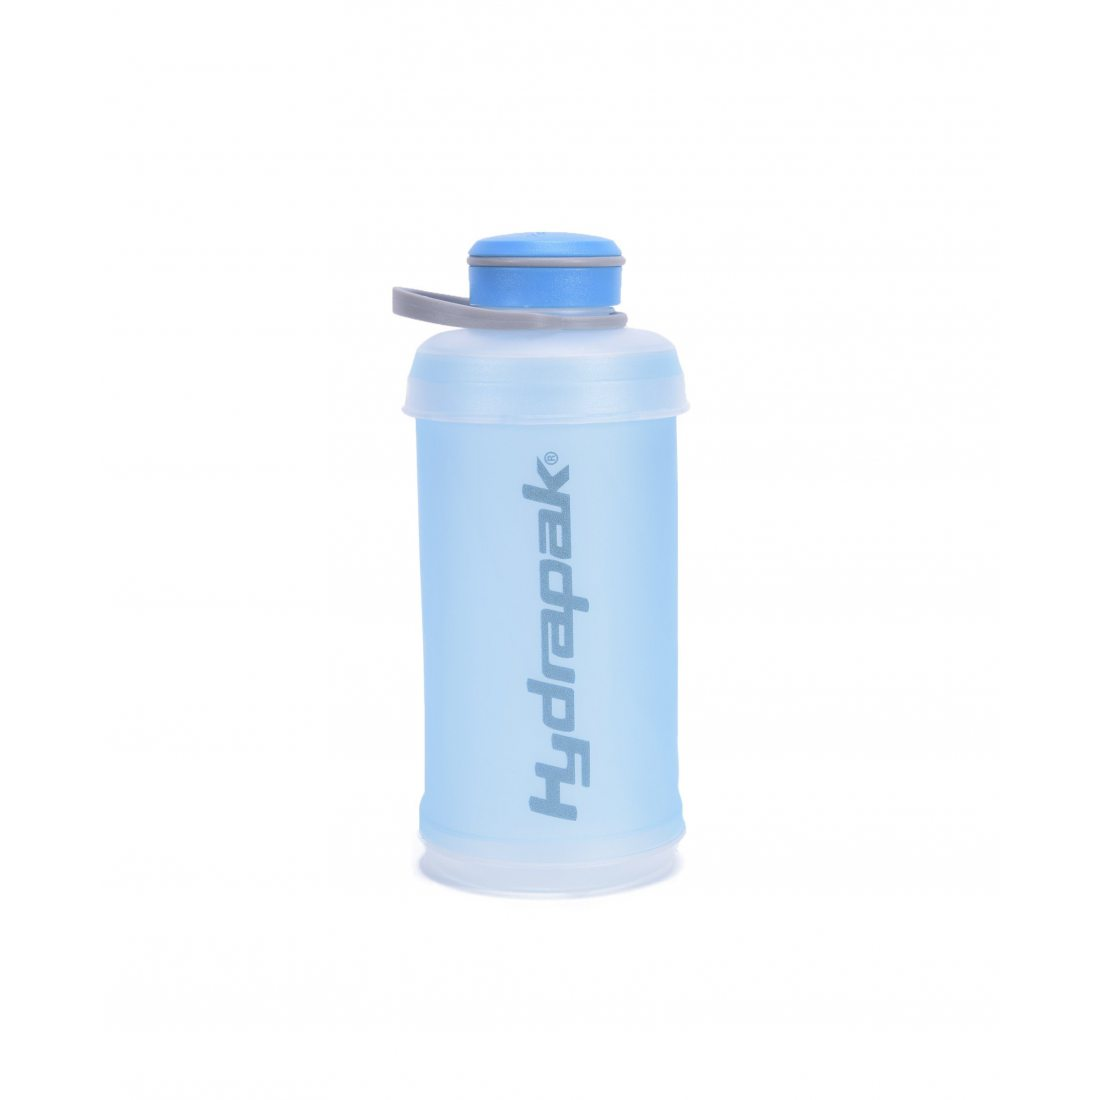 HYDRAPAK STASH 750 COLLAPSIBLE WATER BOTTLE 750 ML (BLUE)